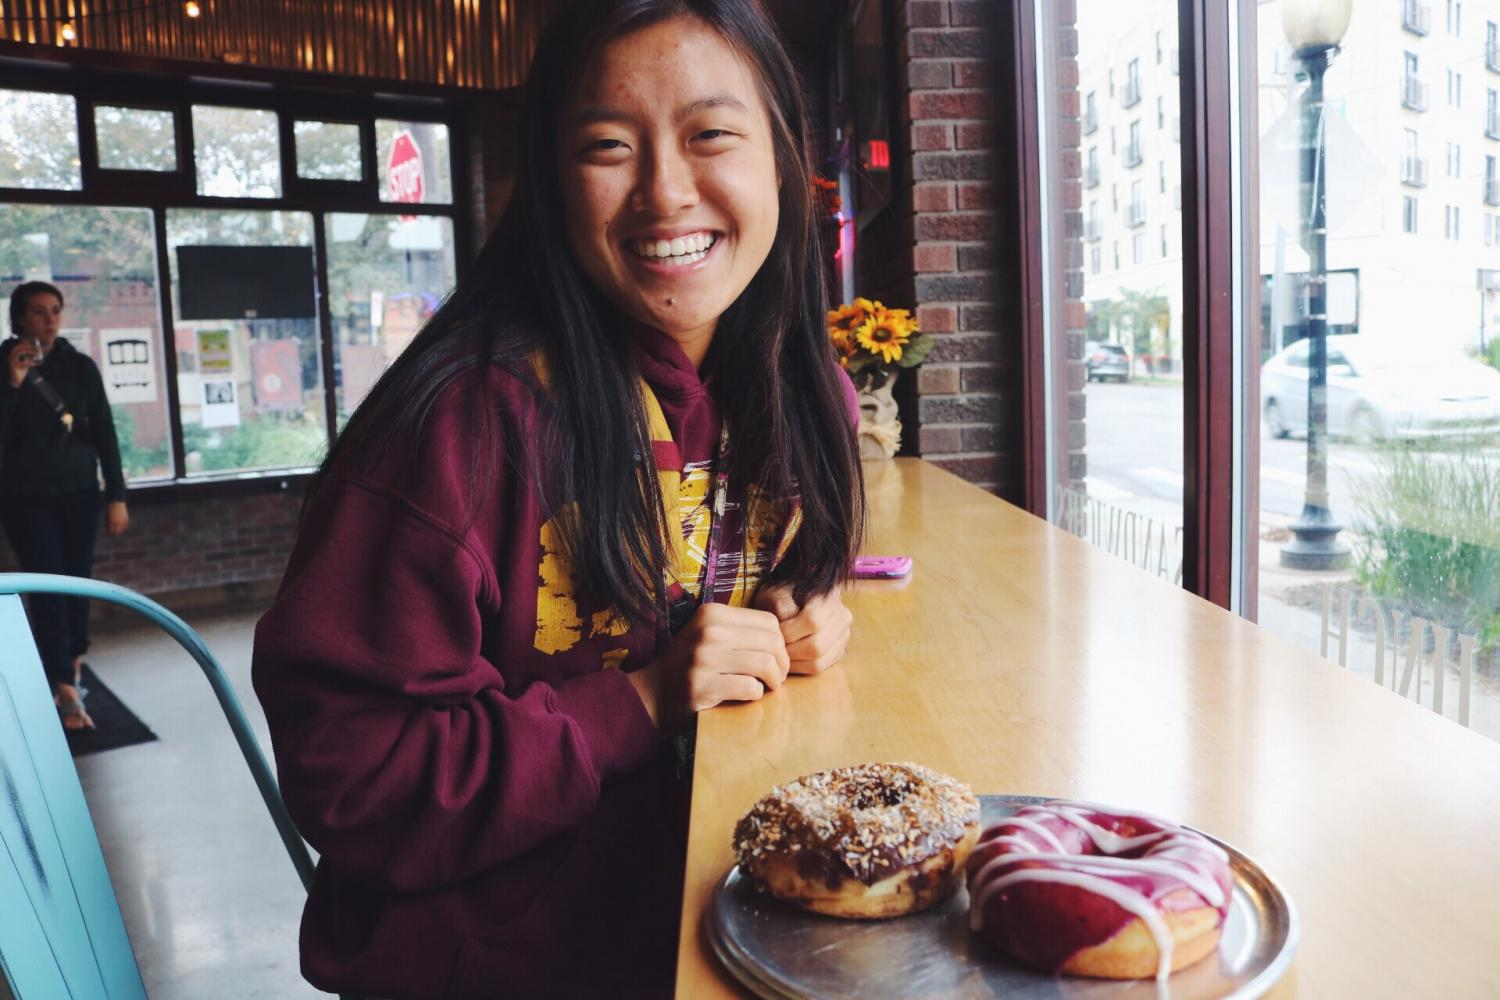 With natural ingredients and bright flavors, Darts Donuts creates noteworthy donuts